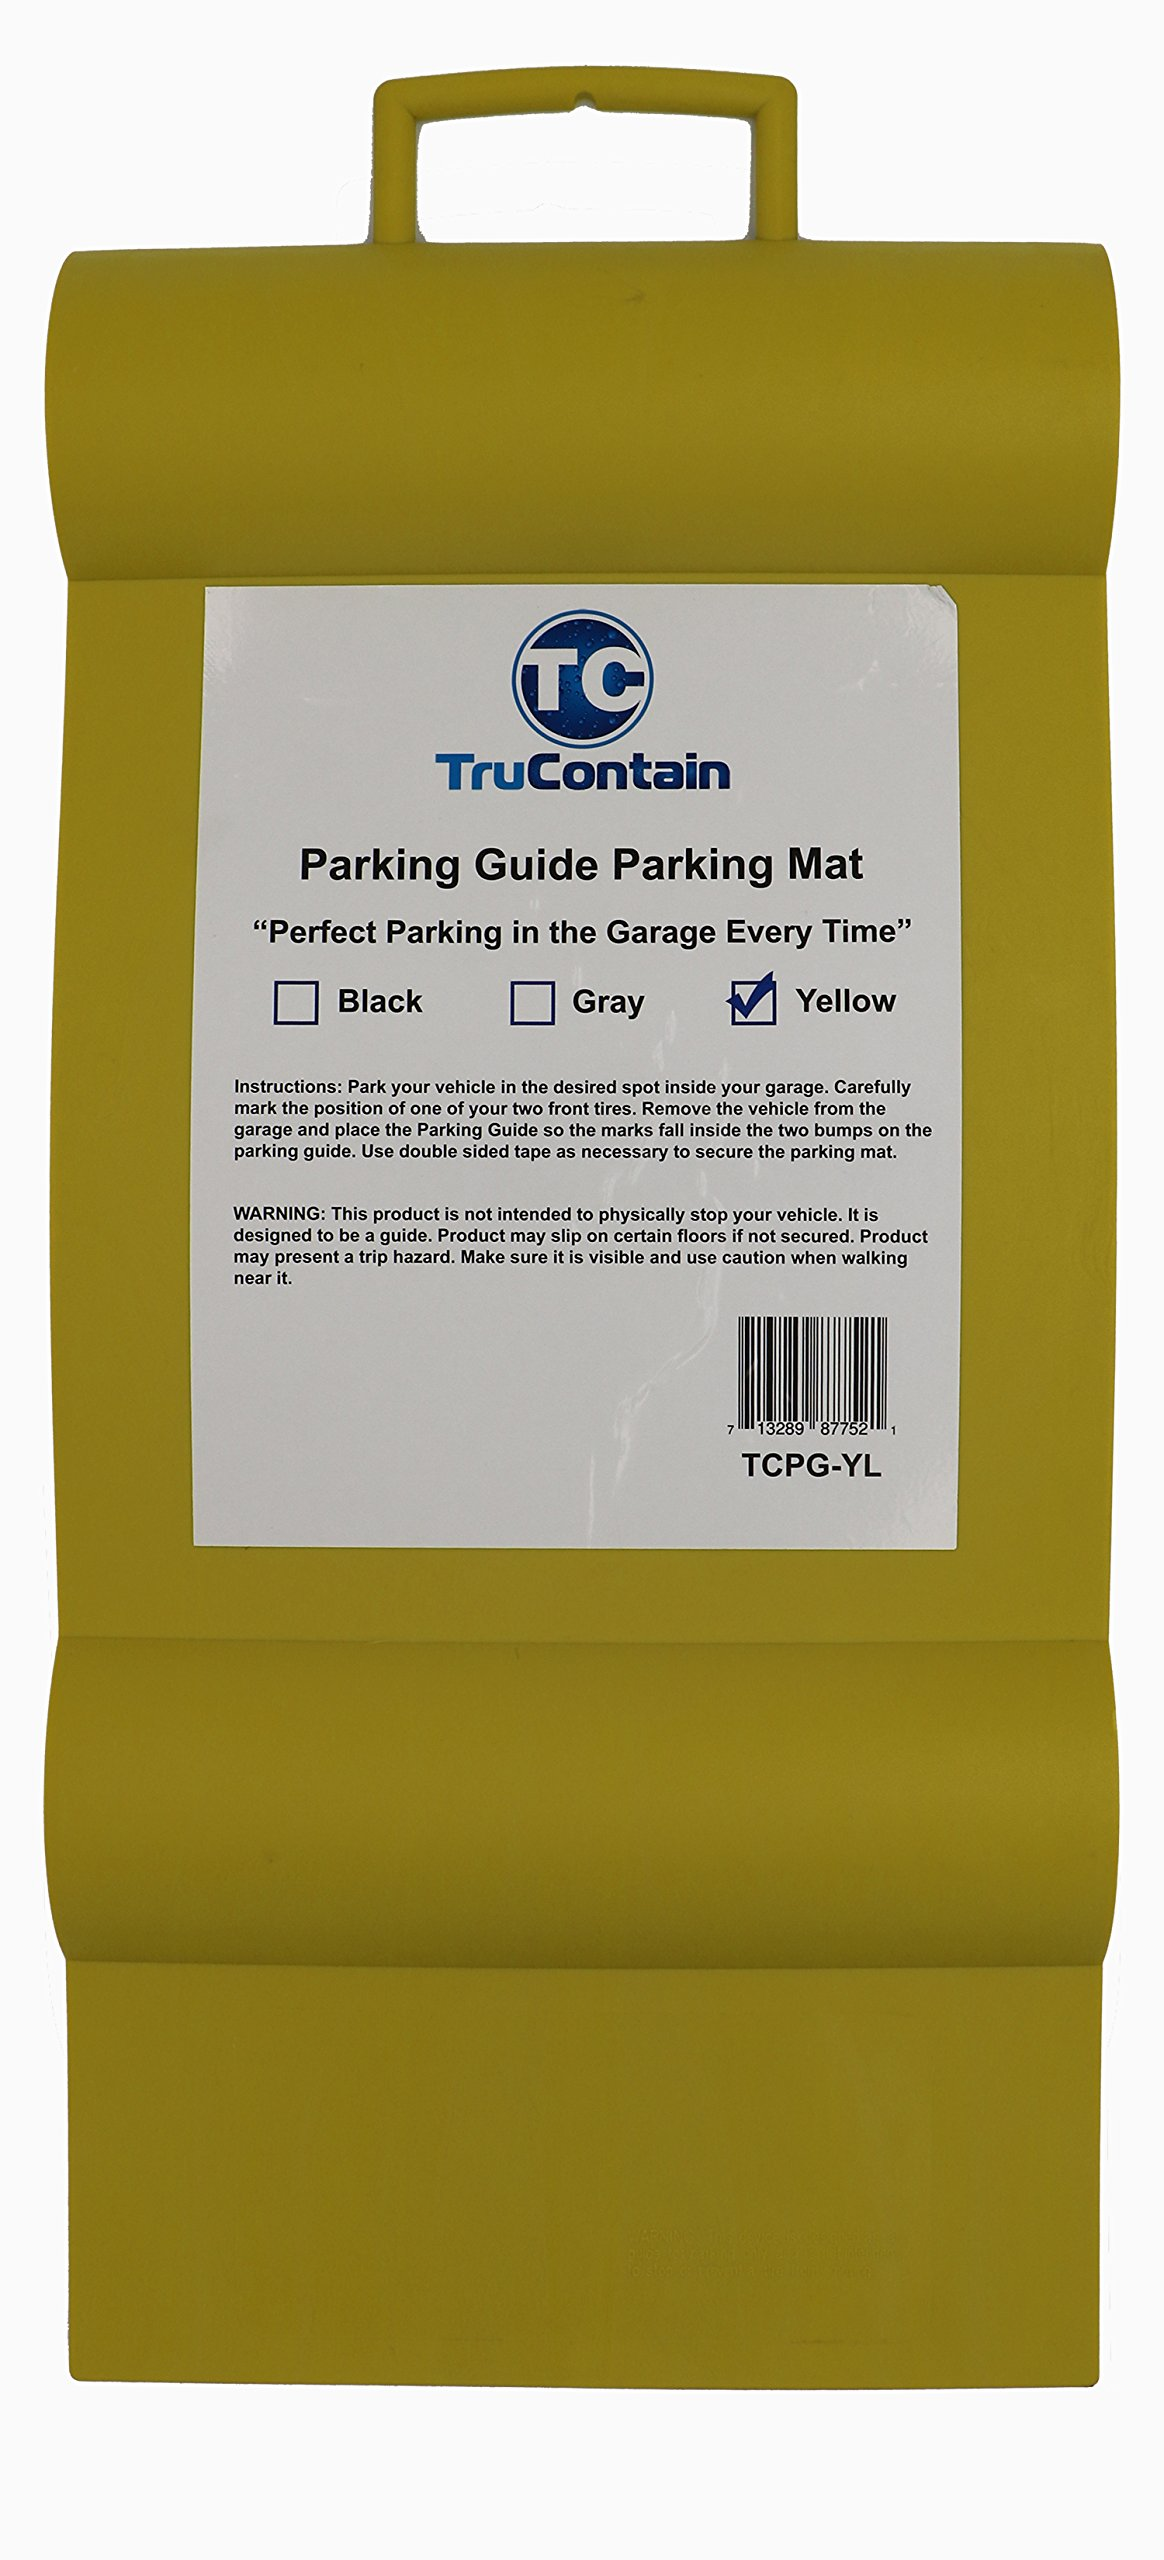 TruContain Parking Guide Parking Mat from (Yellow)